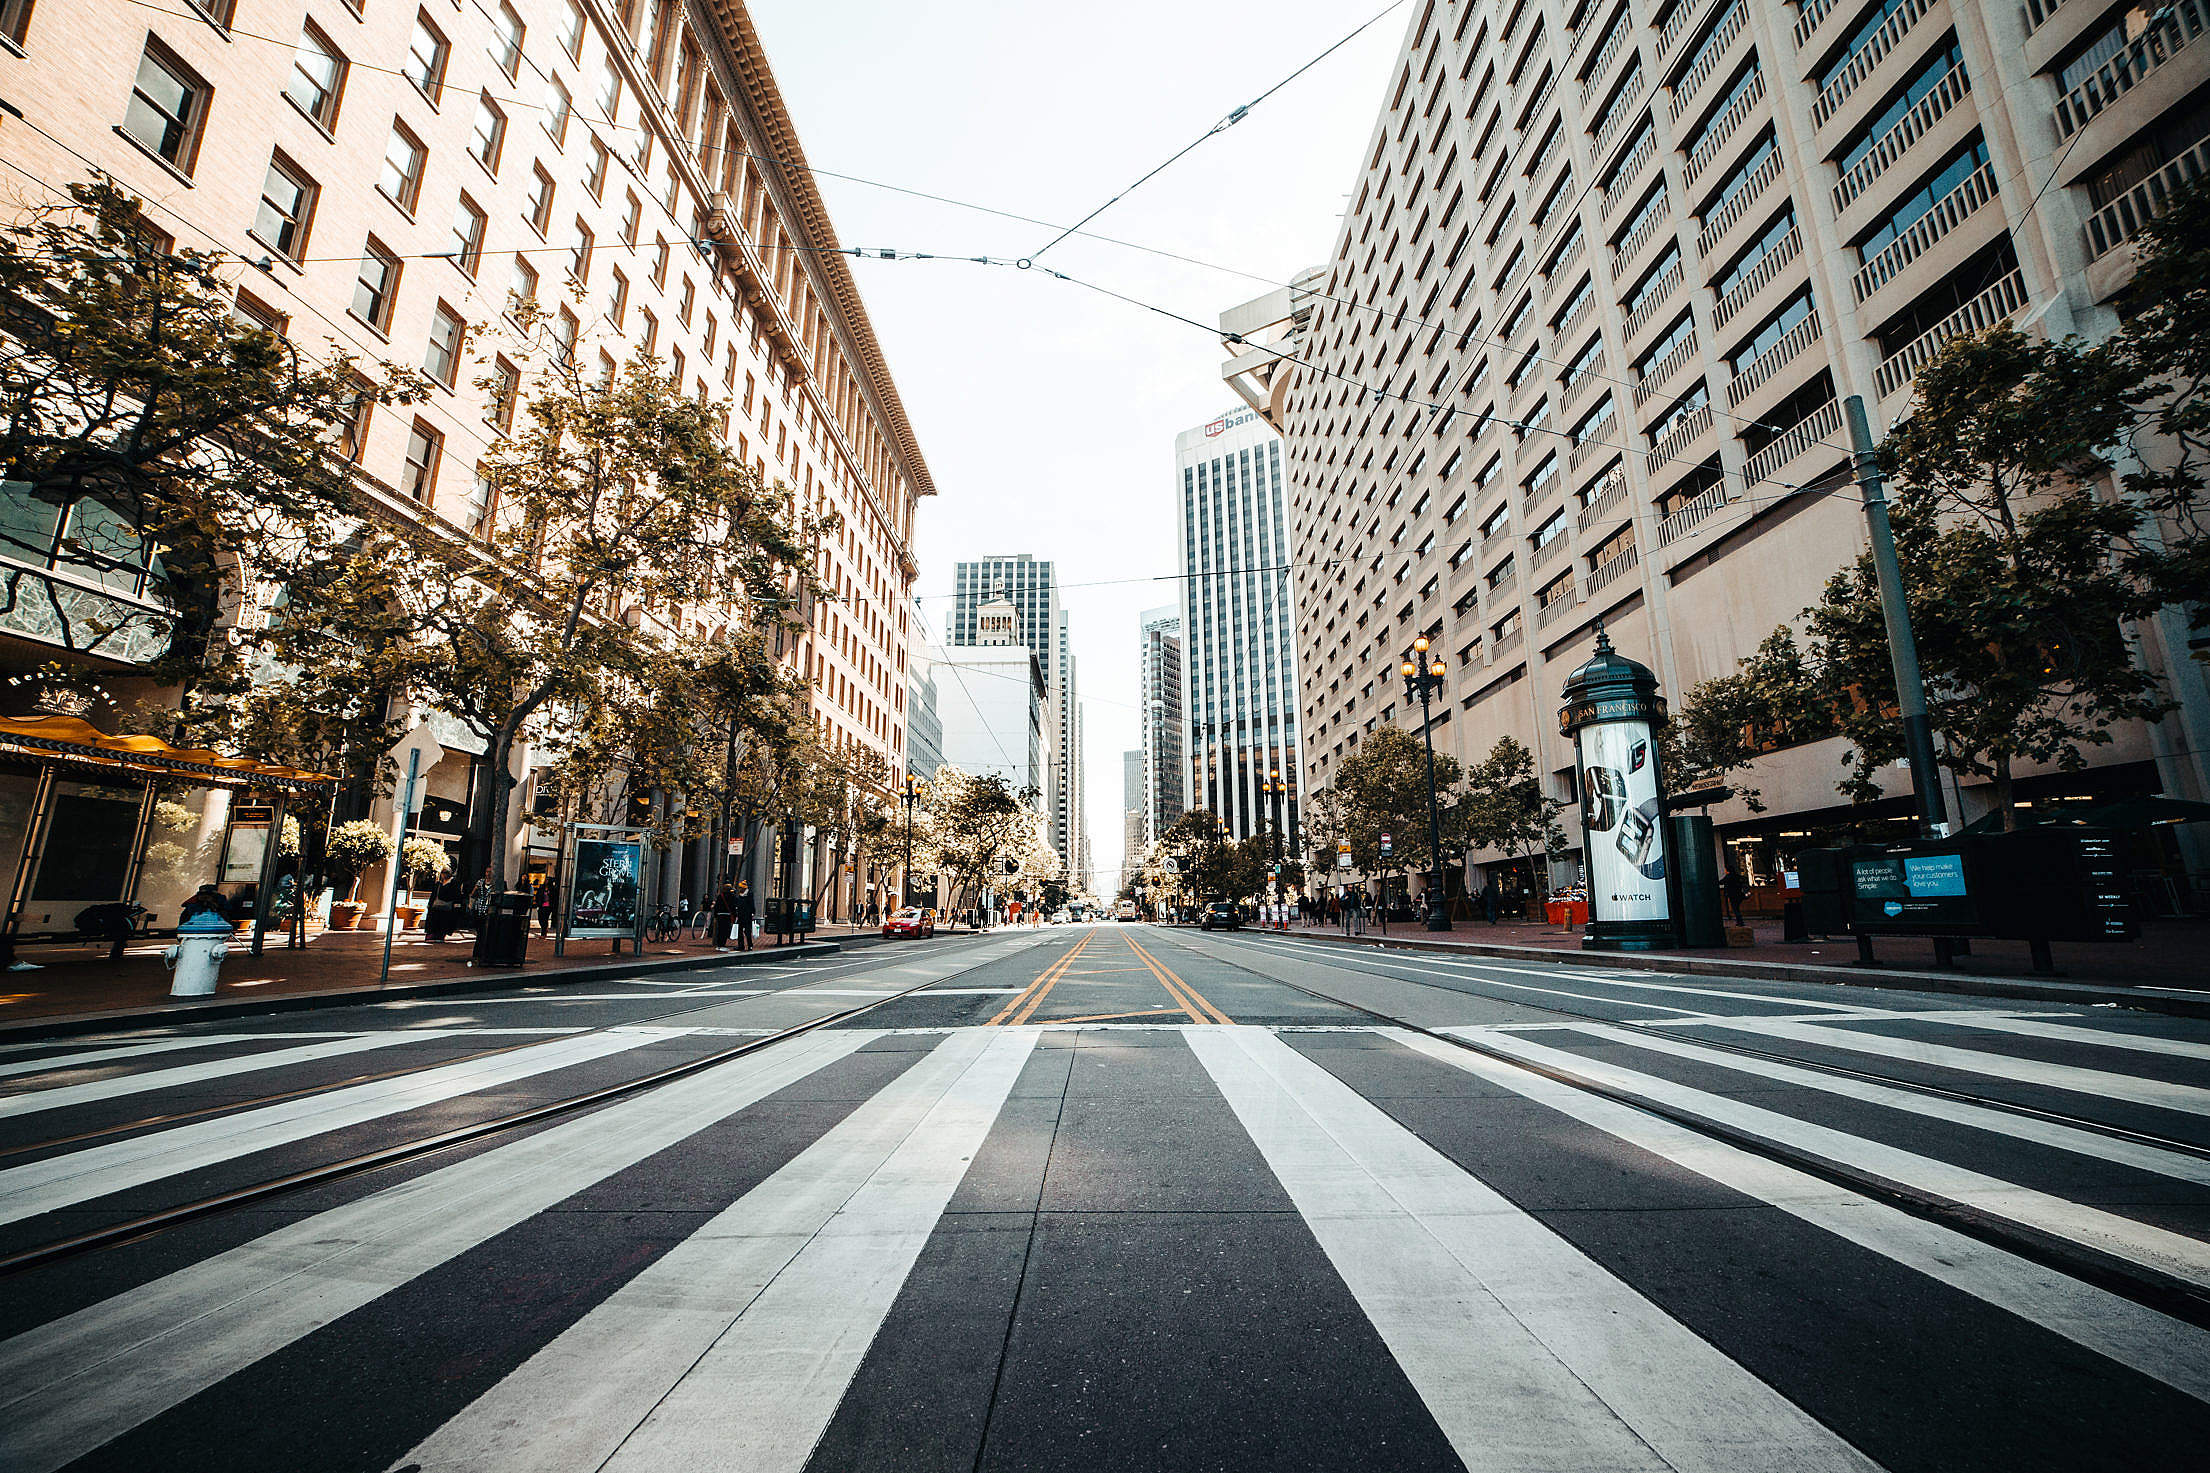 Download Market Street in San Francisco, California Free Stock Photo